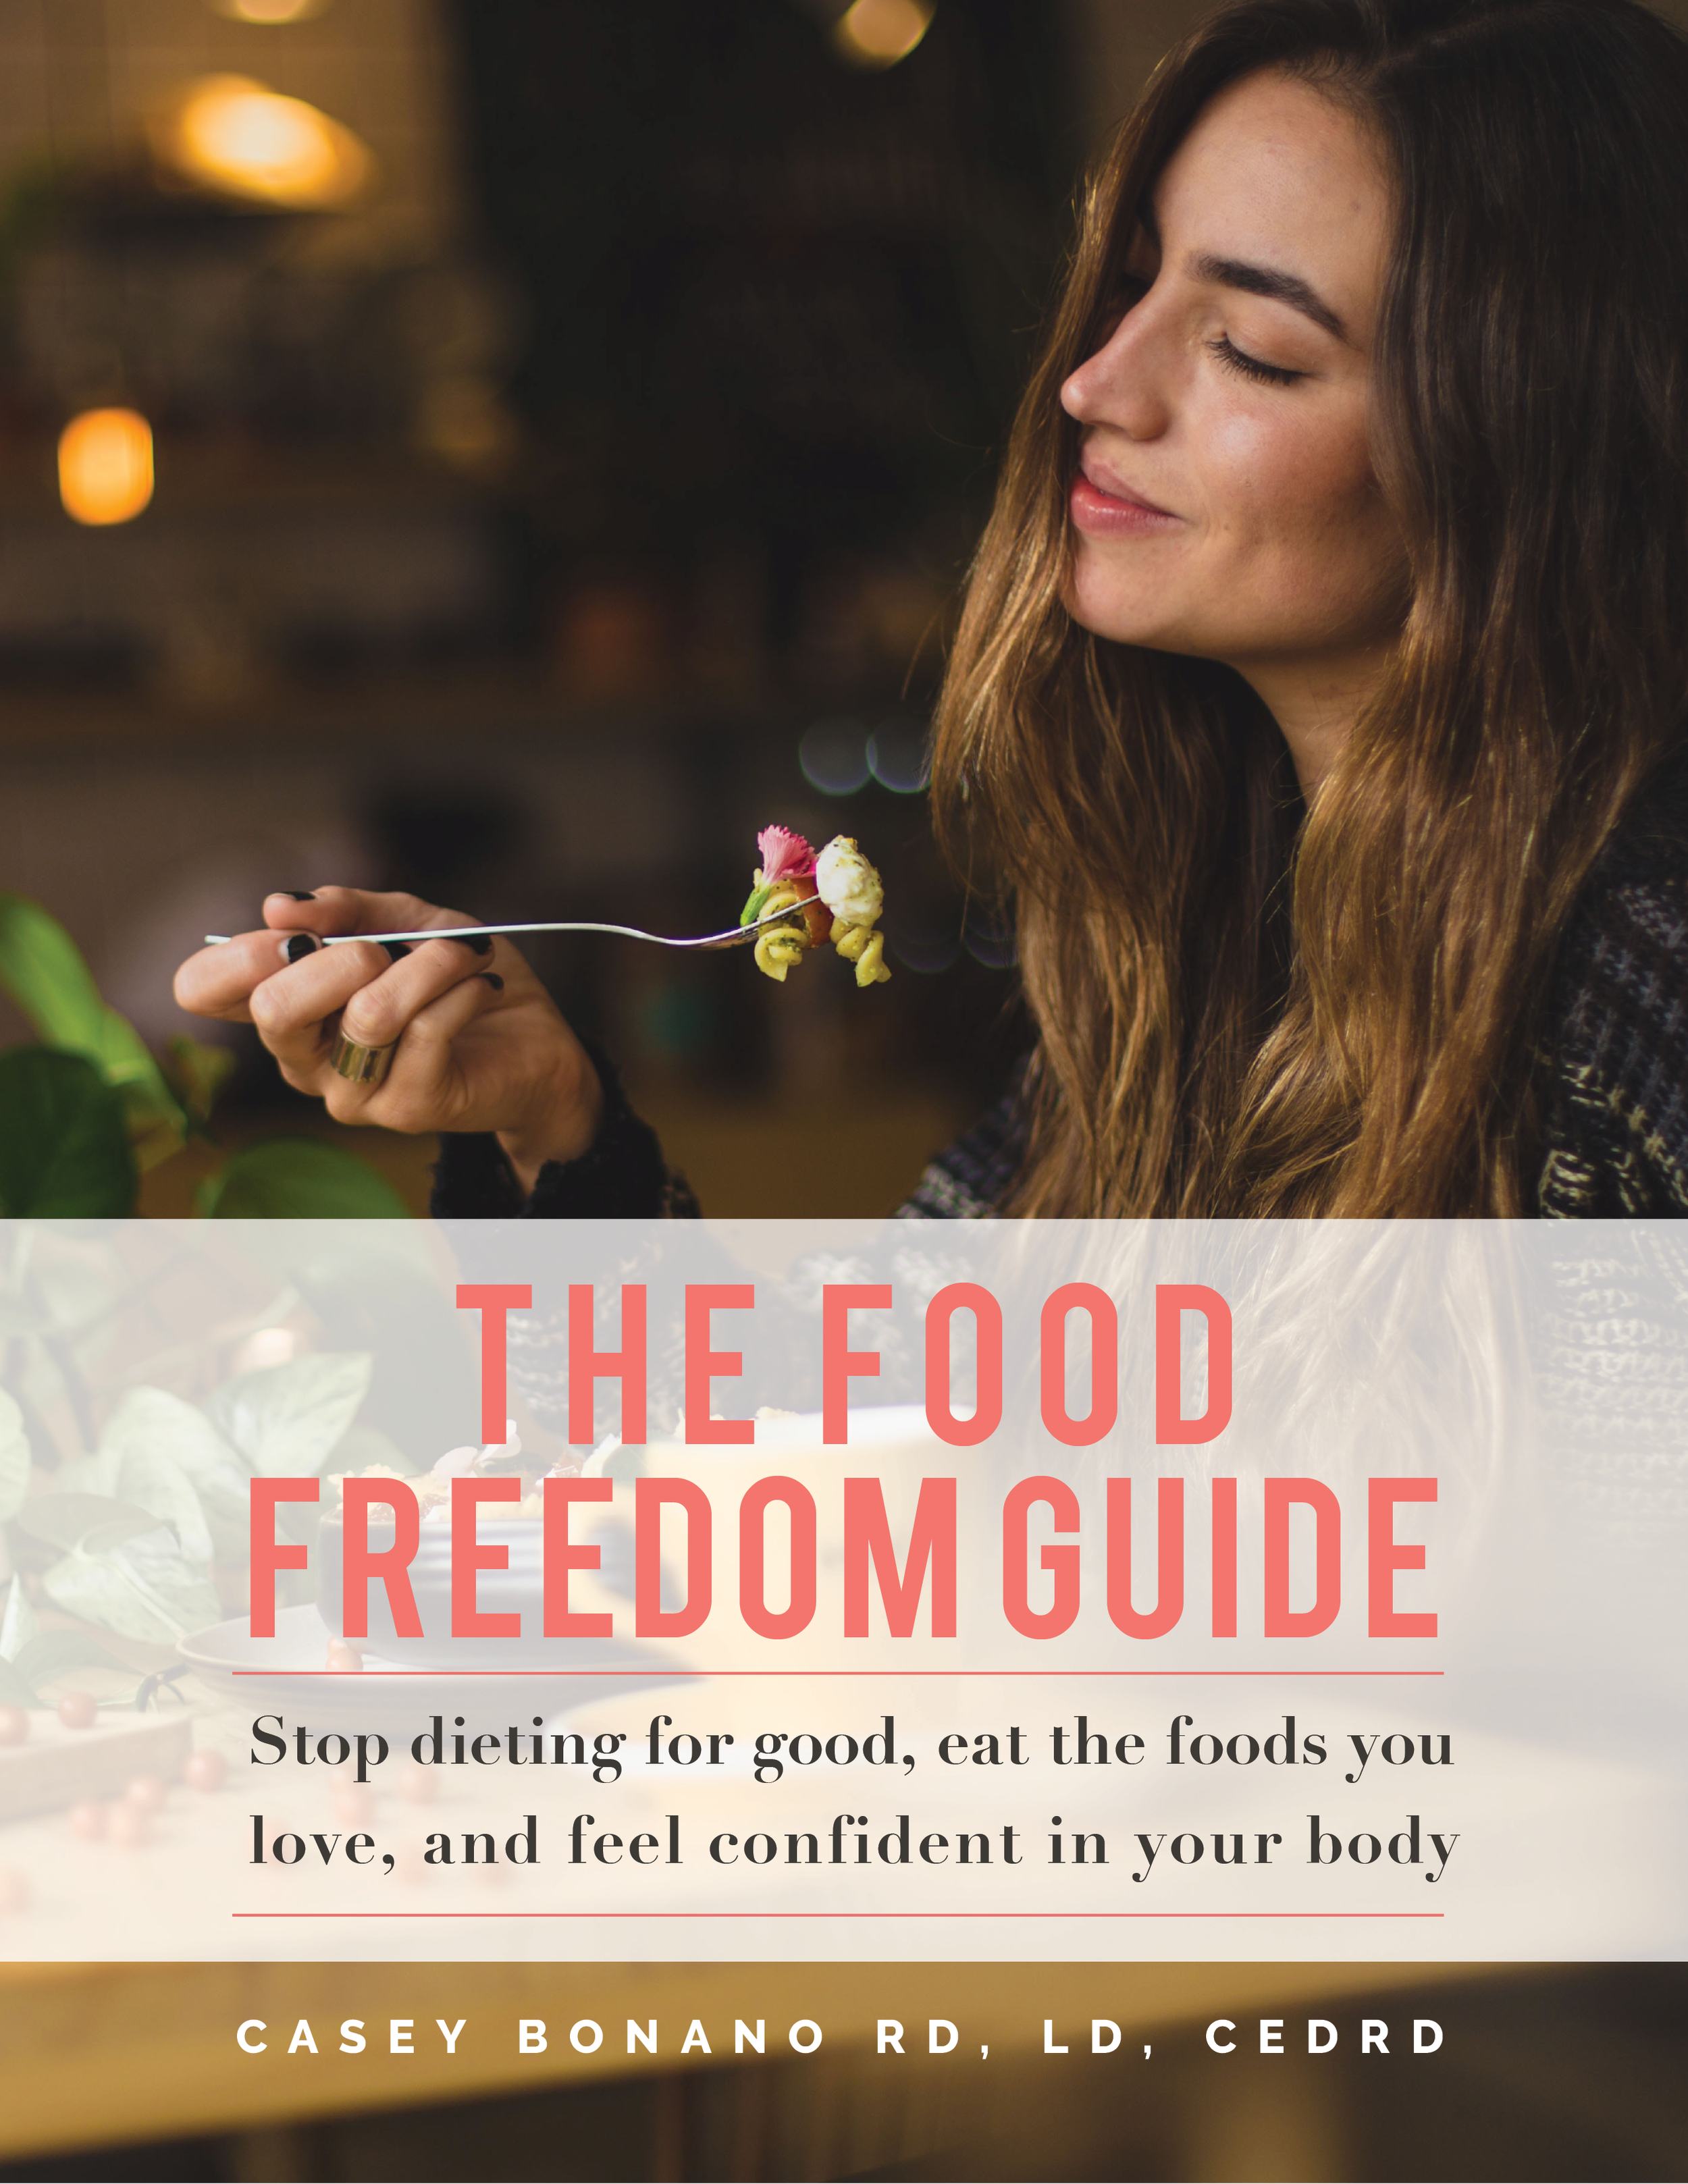 The Food Freedom Guide - Stop dieting for good, eat the foods you love, and feel confident in your body, Dallas Nutritional Counseling, Casey Bonano RD, LD, CEDRD #dallasnutritionalcounseling #thefoodfreedomguide #nondietapproach #caseybonanord